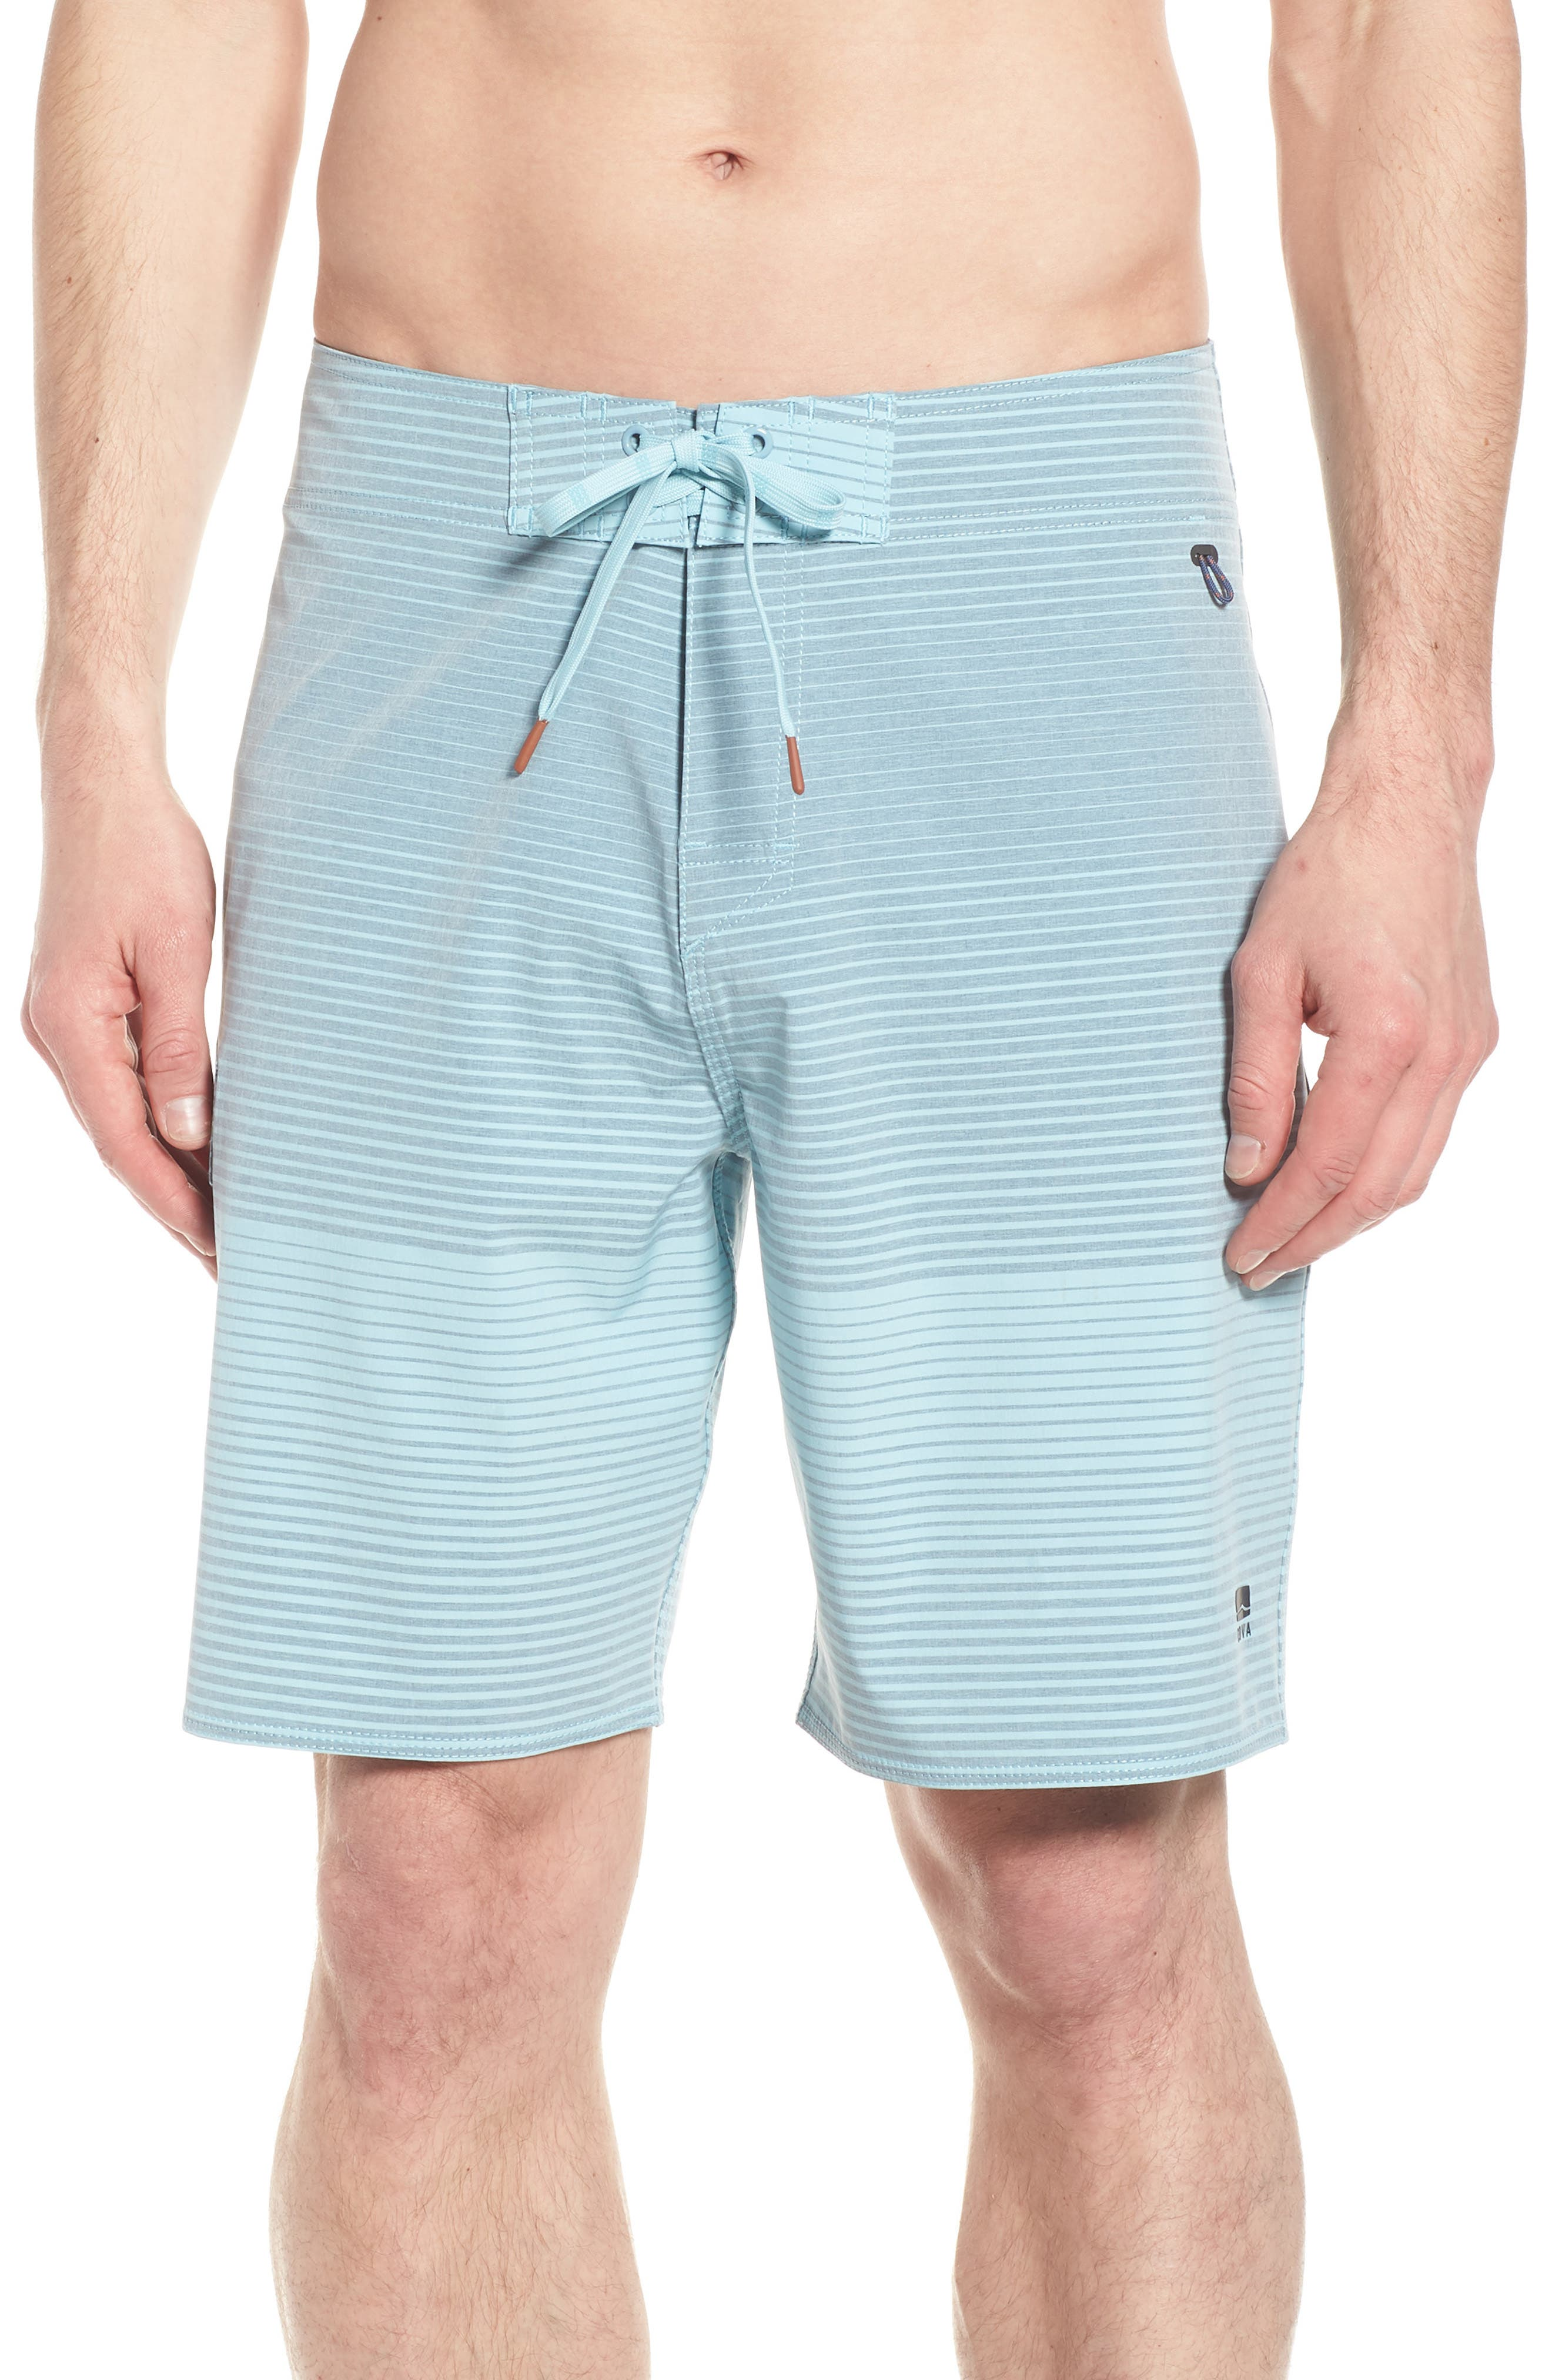 Water Level Board Shorts,                             Main thumbnail 1, color,                             Harbour Blue